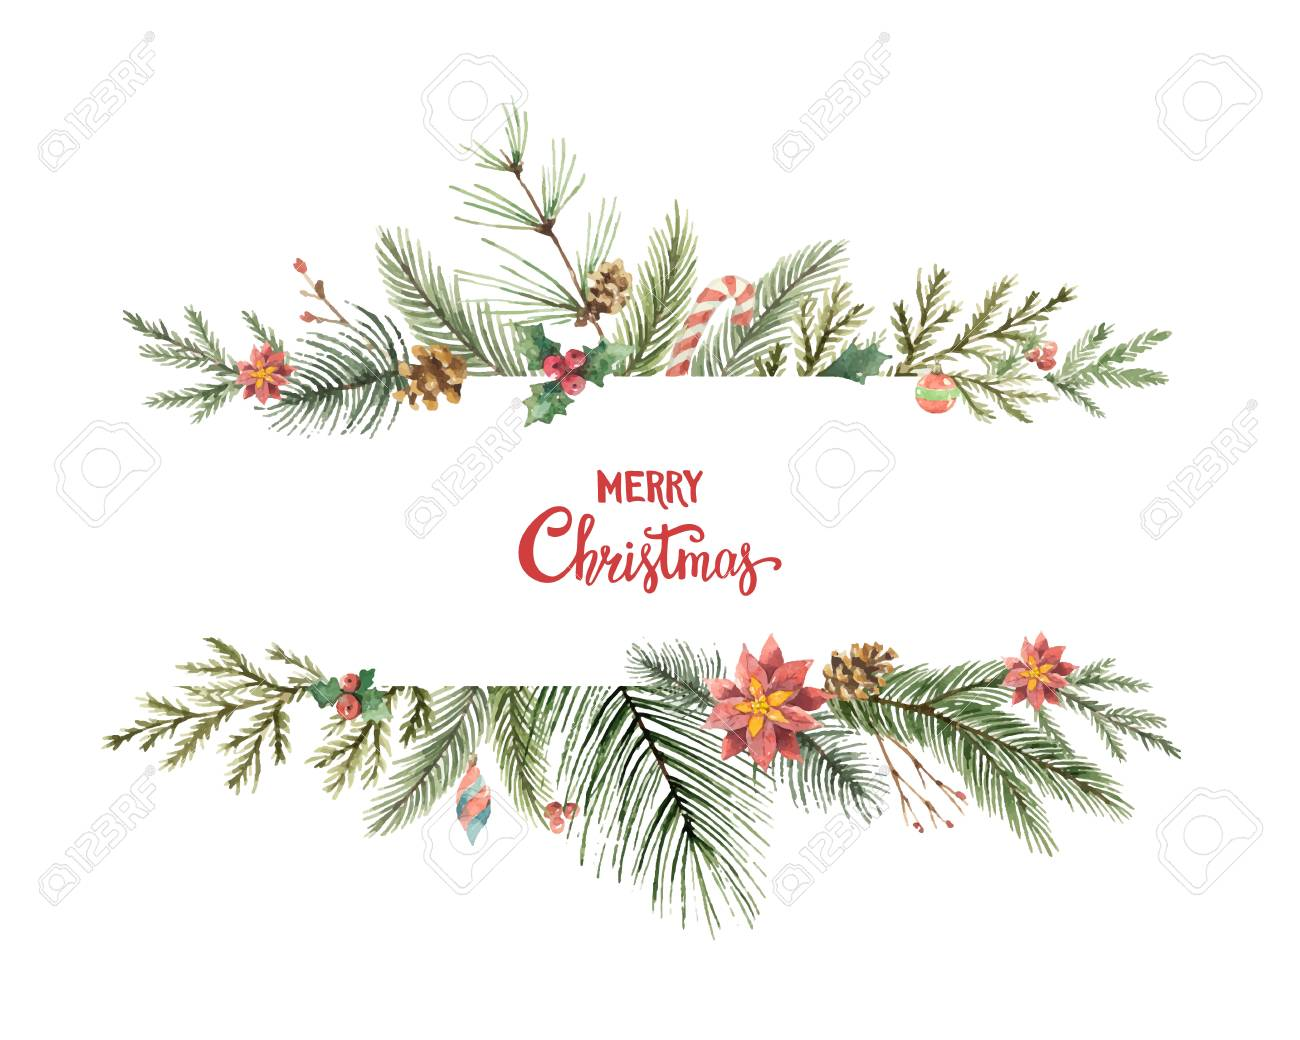 Watercolor vector Christmas banner with fir branches and place for text. - 88693971